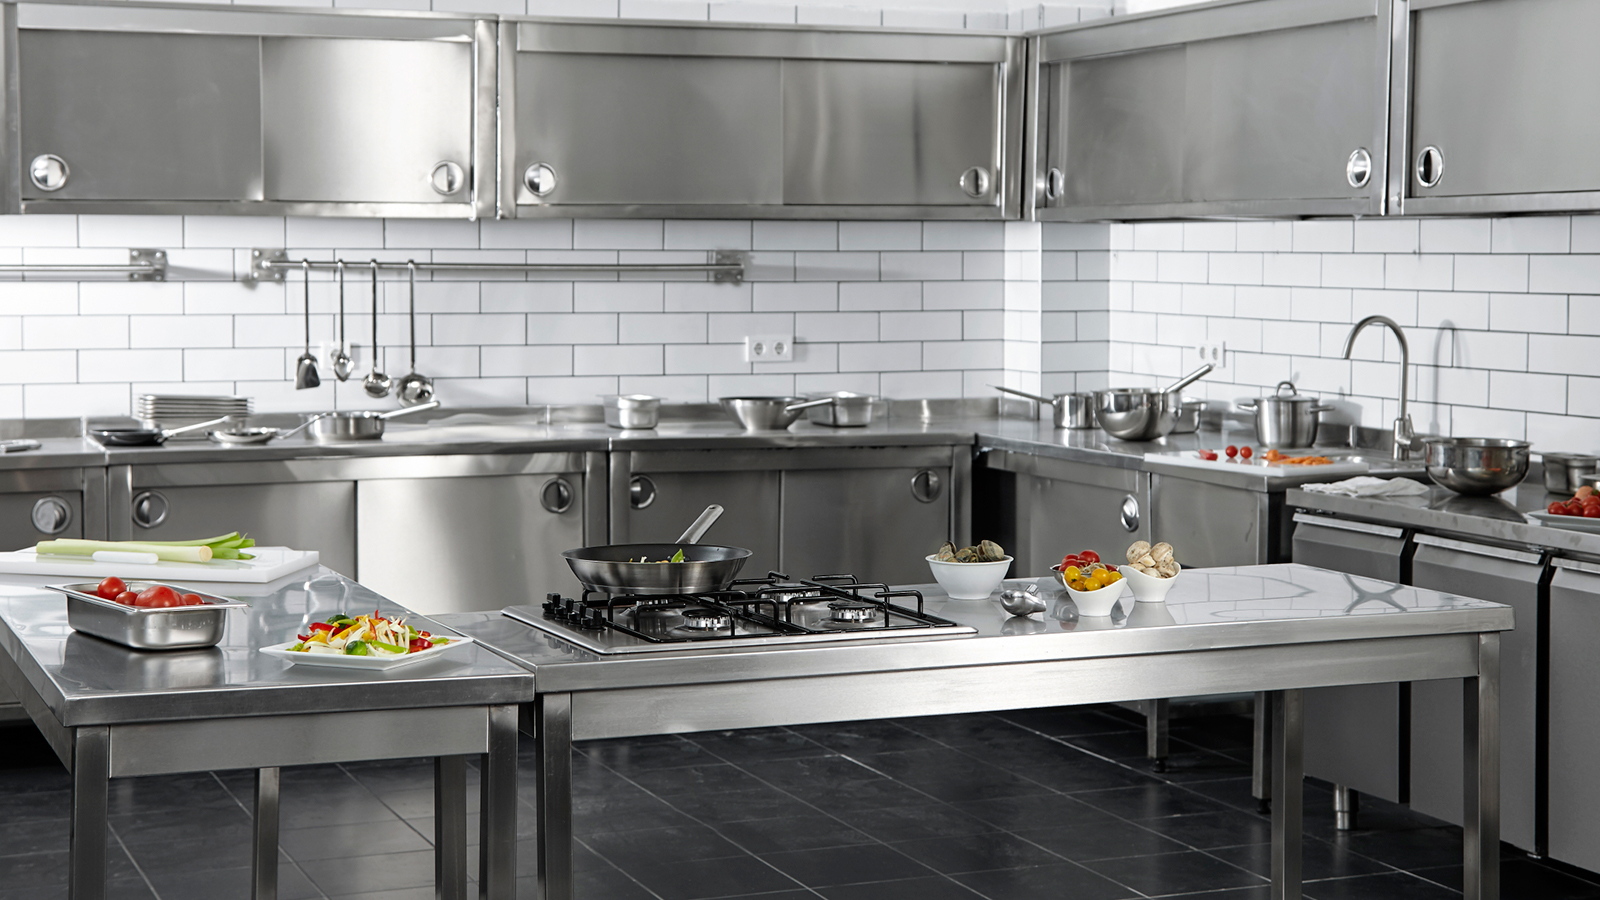 commercial kitchens refrigerator small kitchen cooking equipment vents efficiency vermont